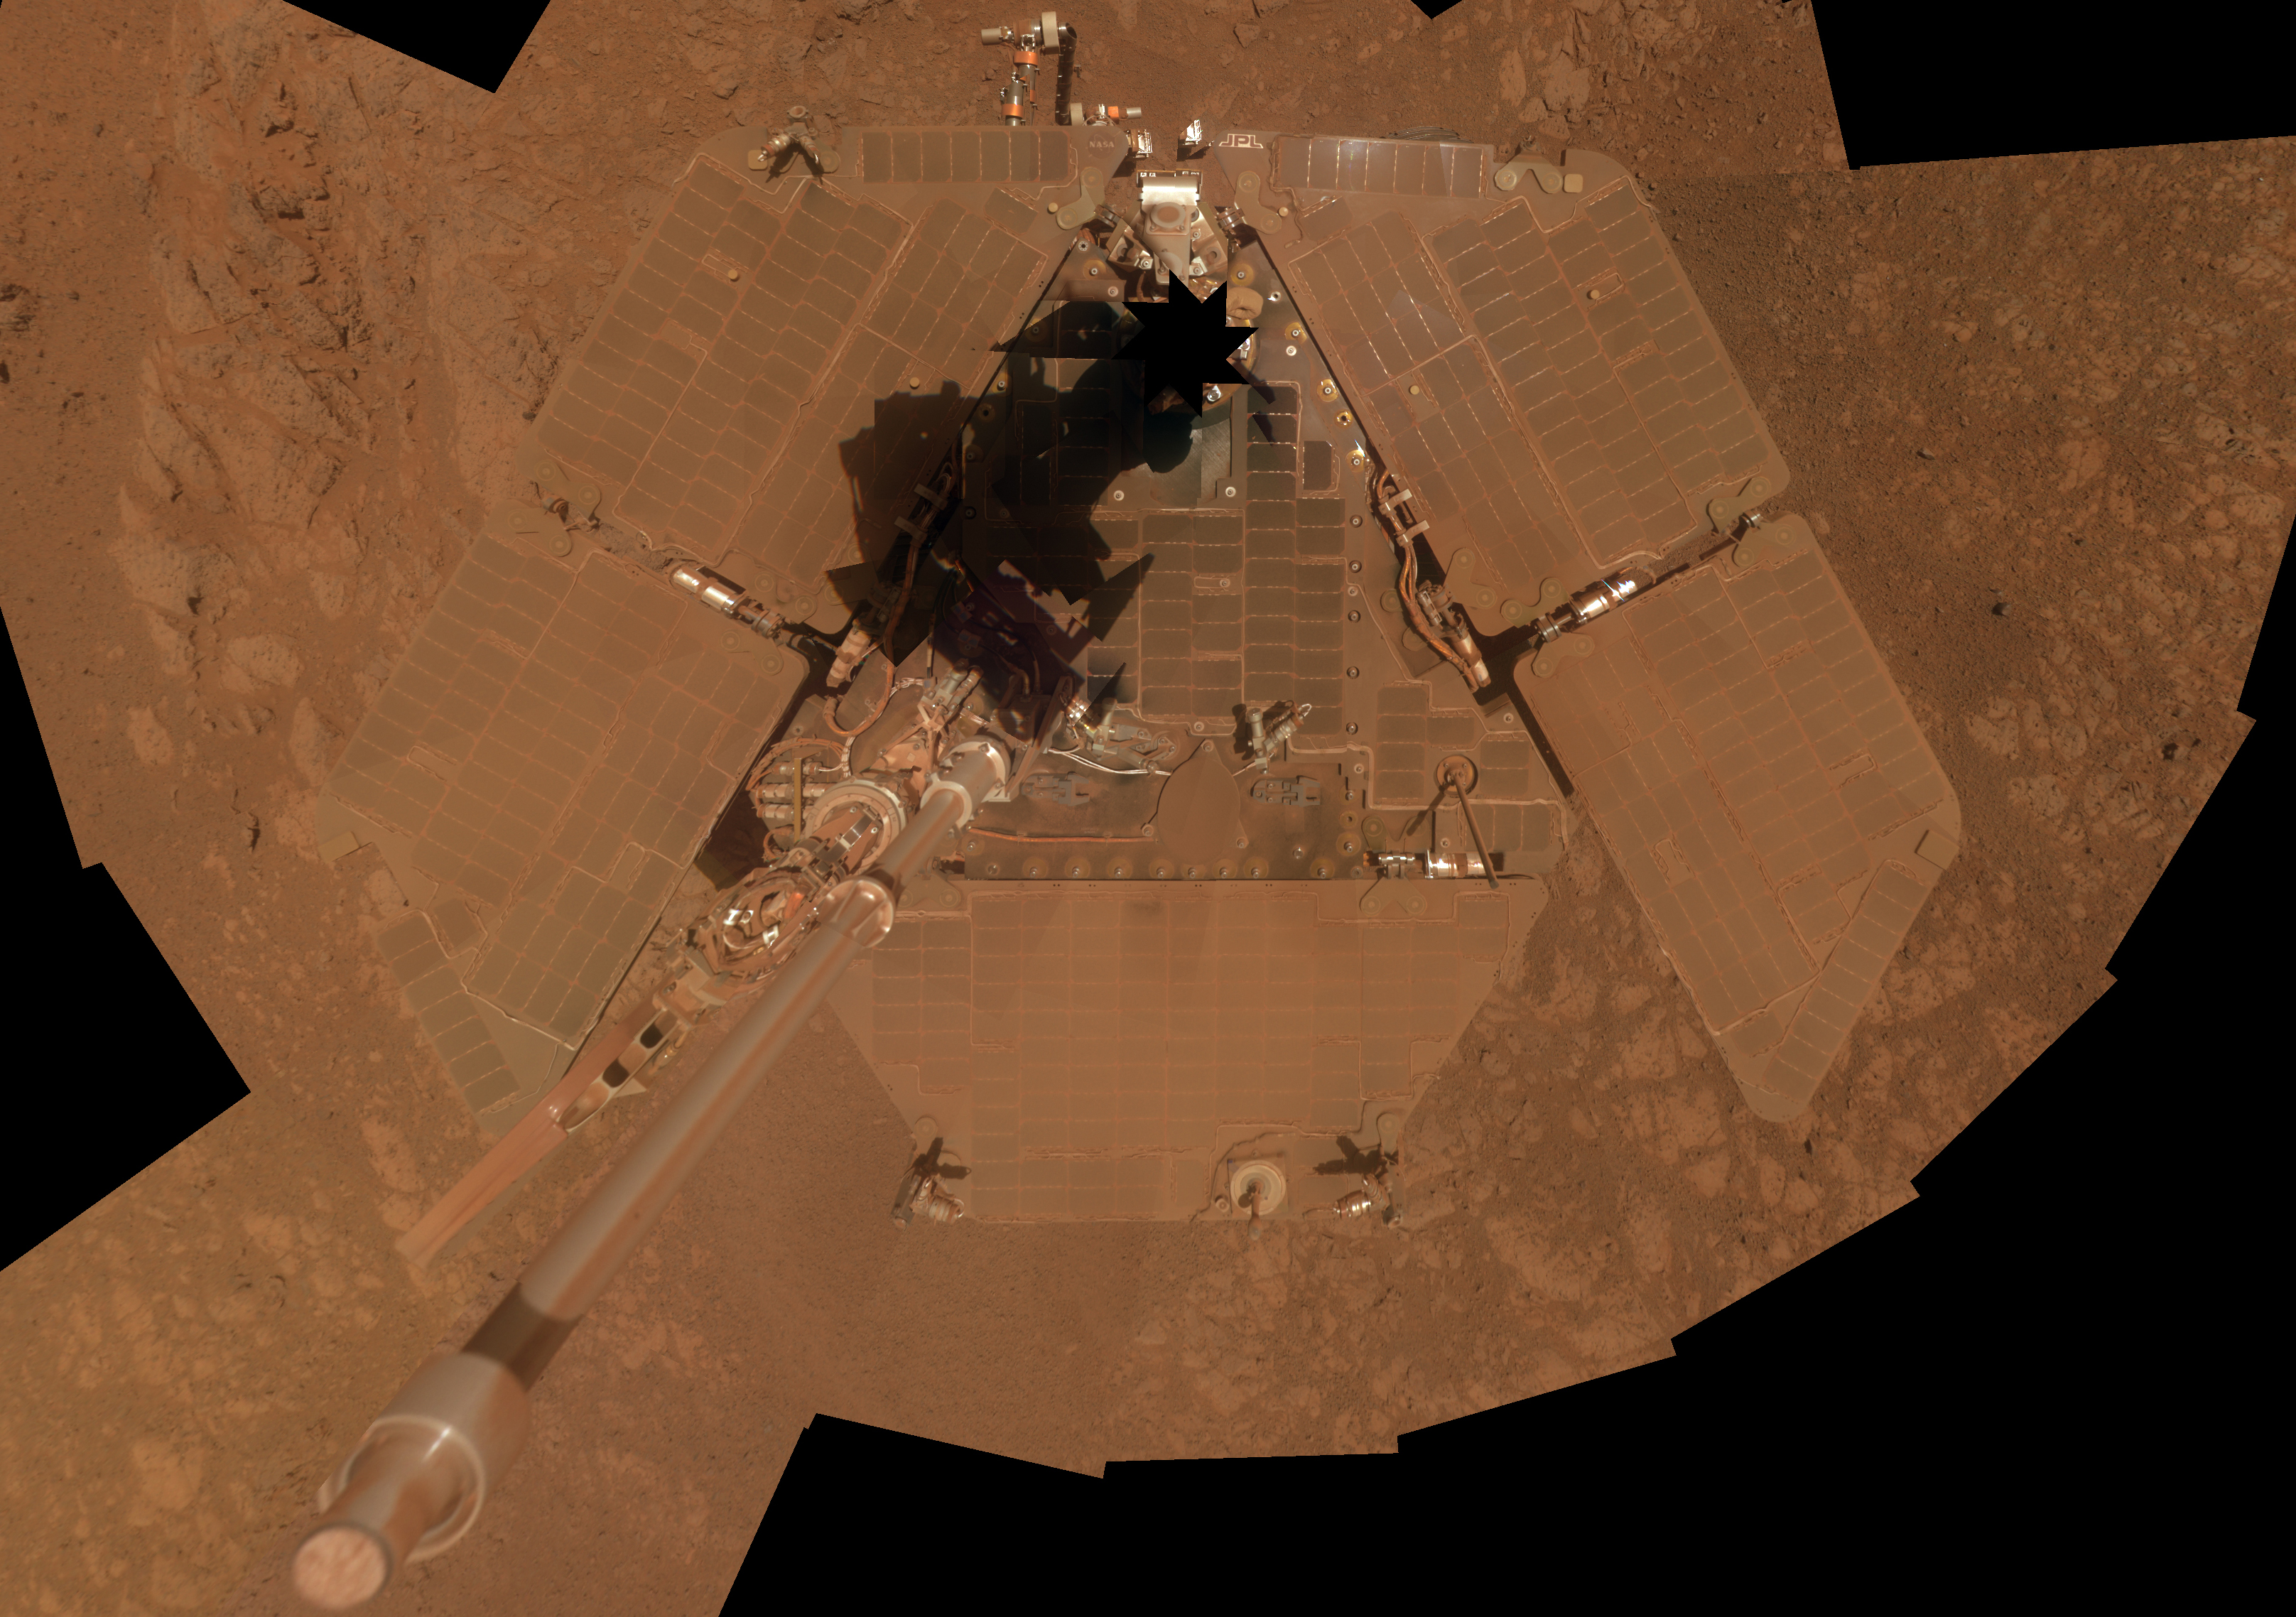 mars rover findings - photo #23